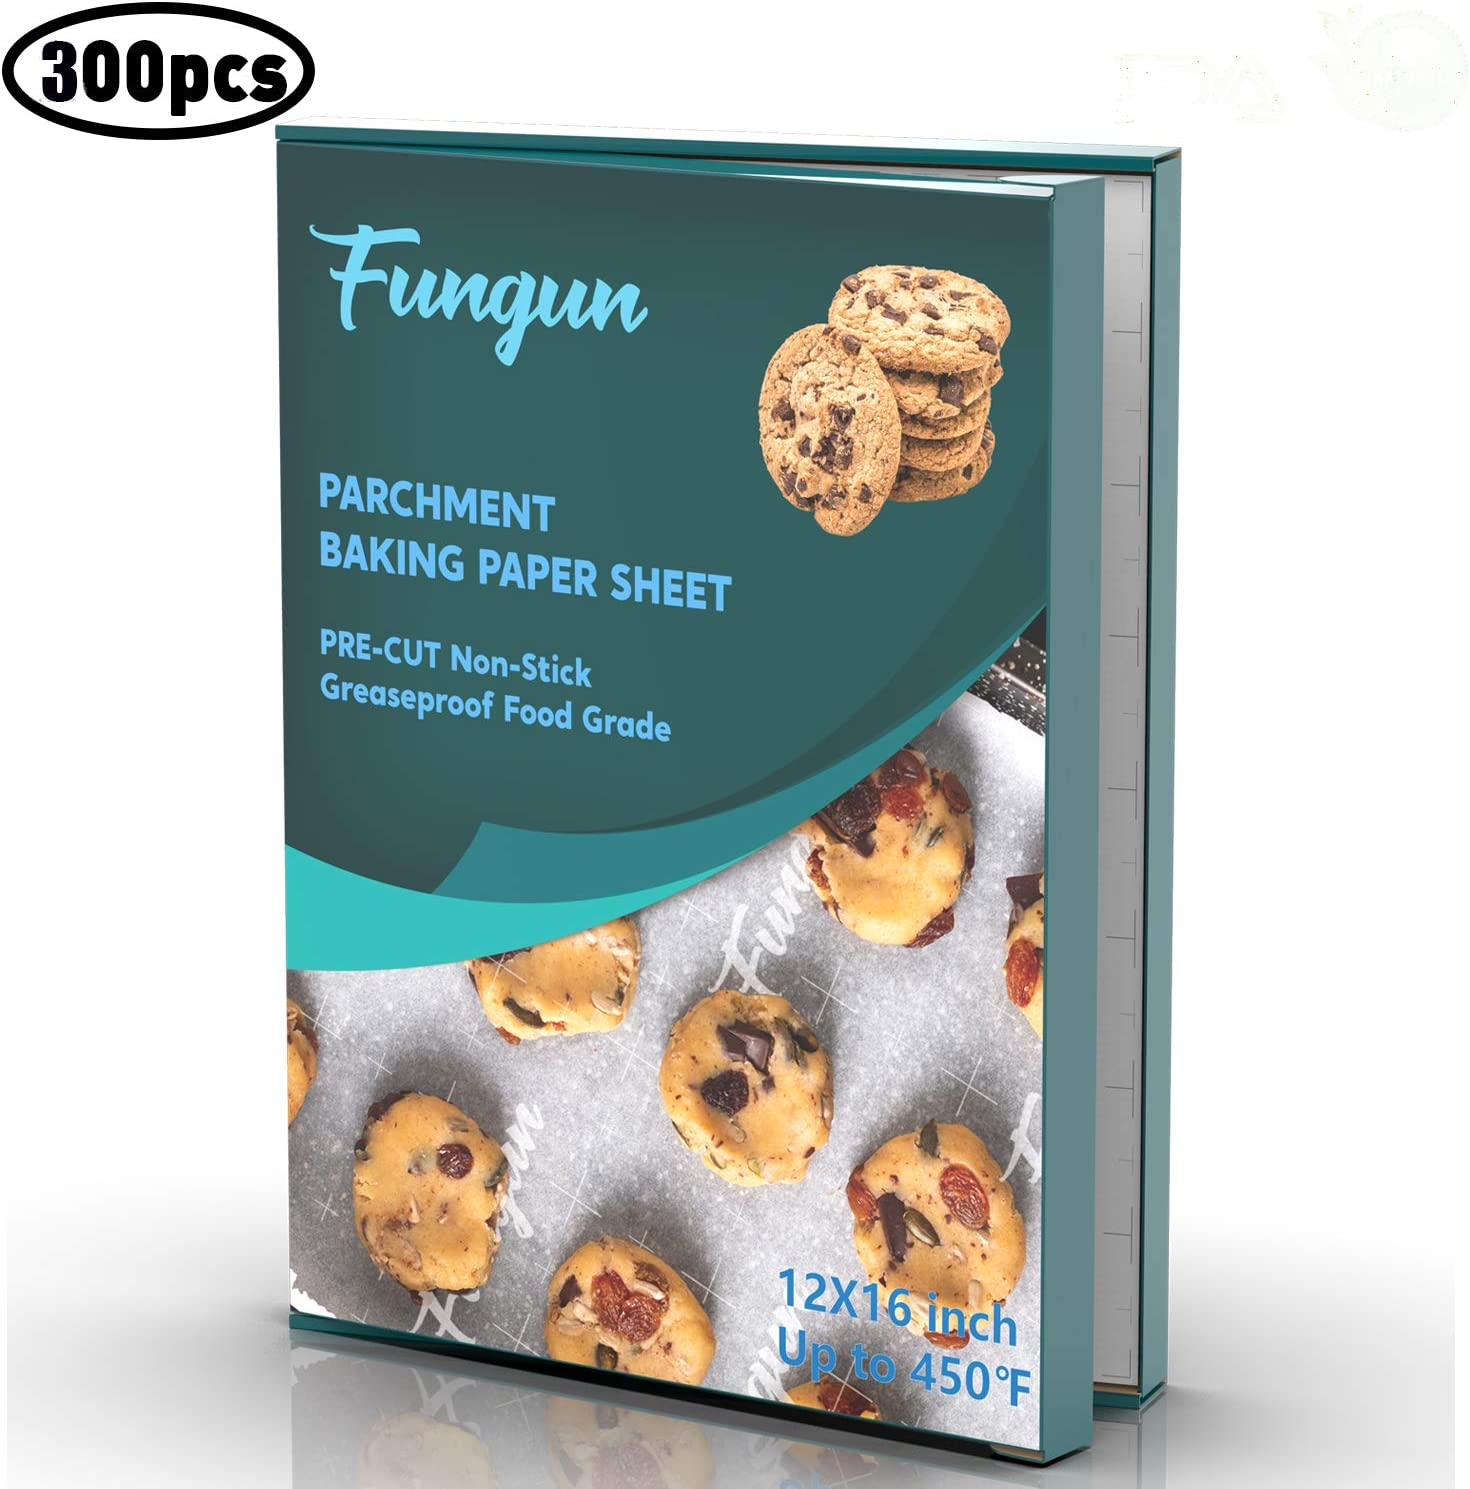 Parchment Paper Sheets For Baking-Fungun Precut White Parchment Paper Liners For 12 X 16 Cookie Sheets & Pans - Best For Non-Stick Baking - 300 Sheets